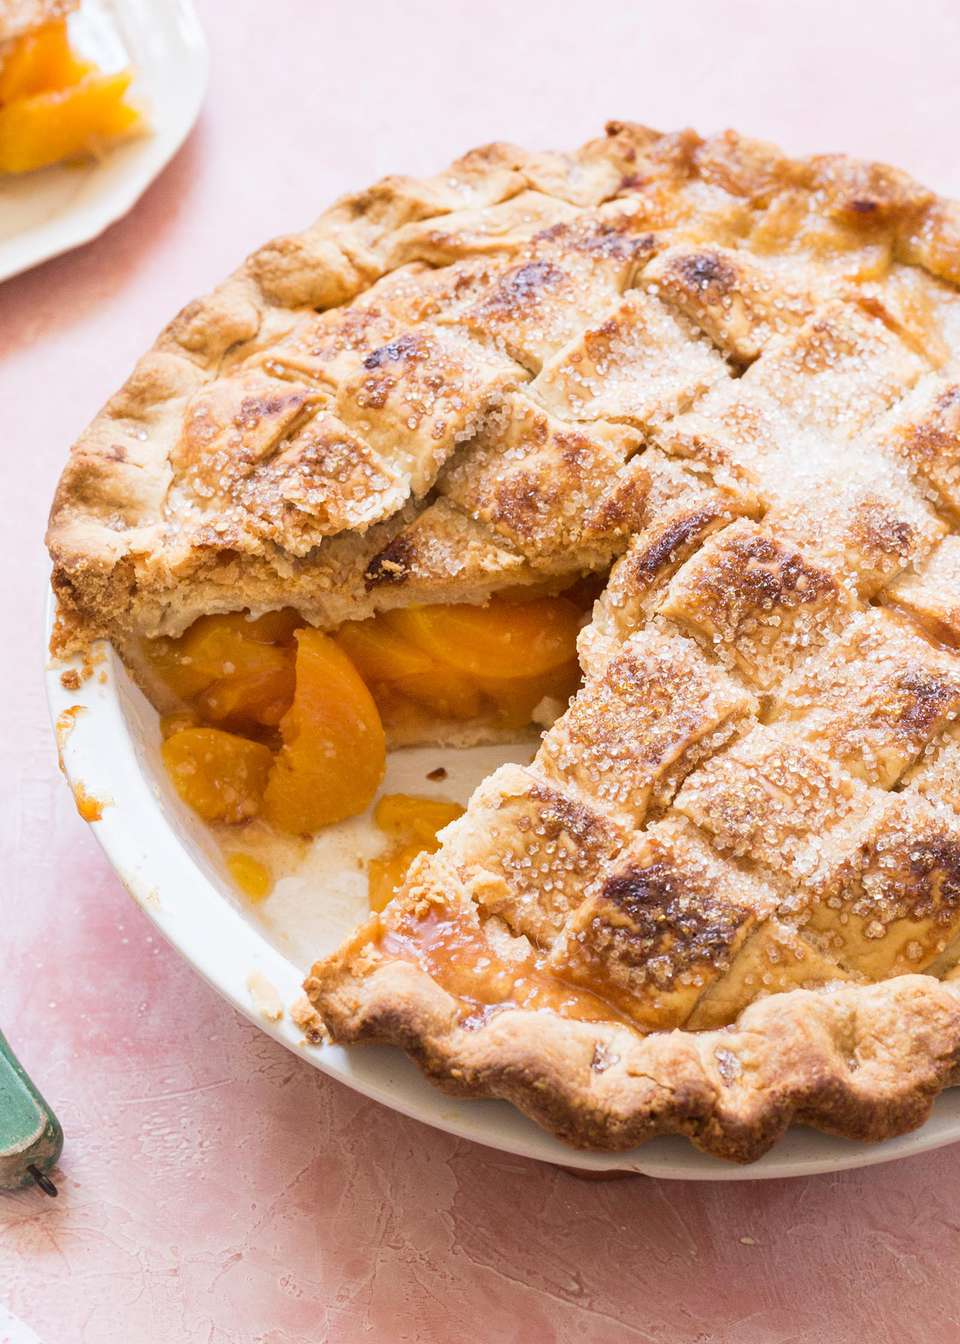 Homemade Peach Pie with one slice removed